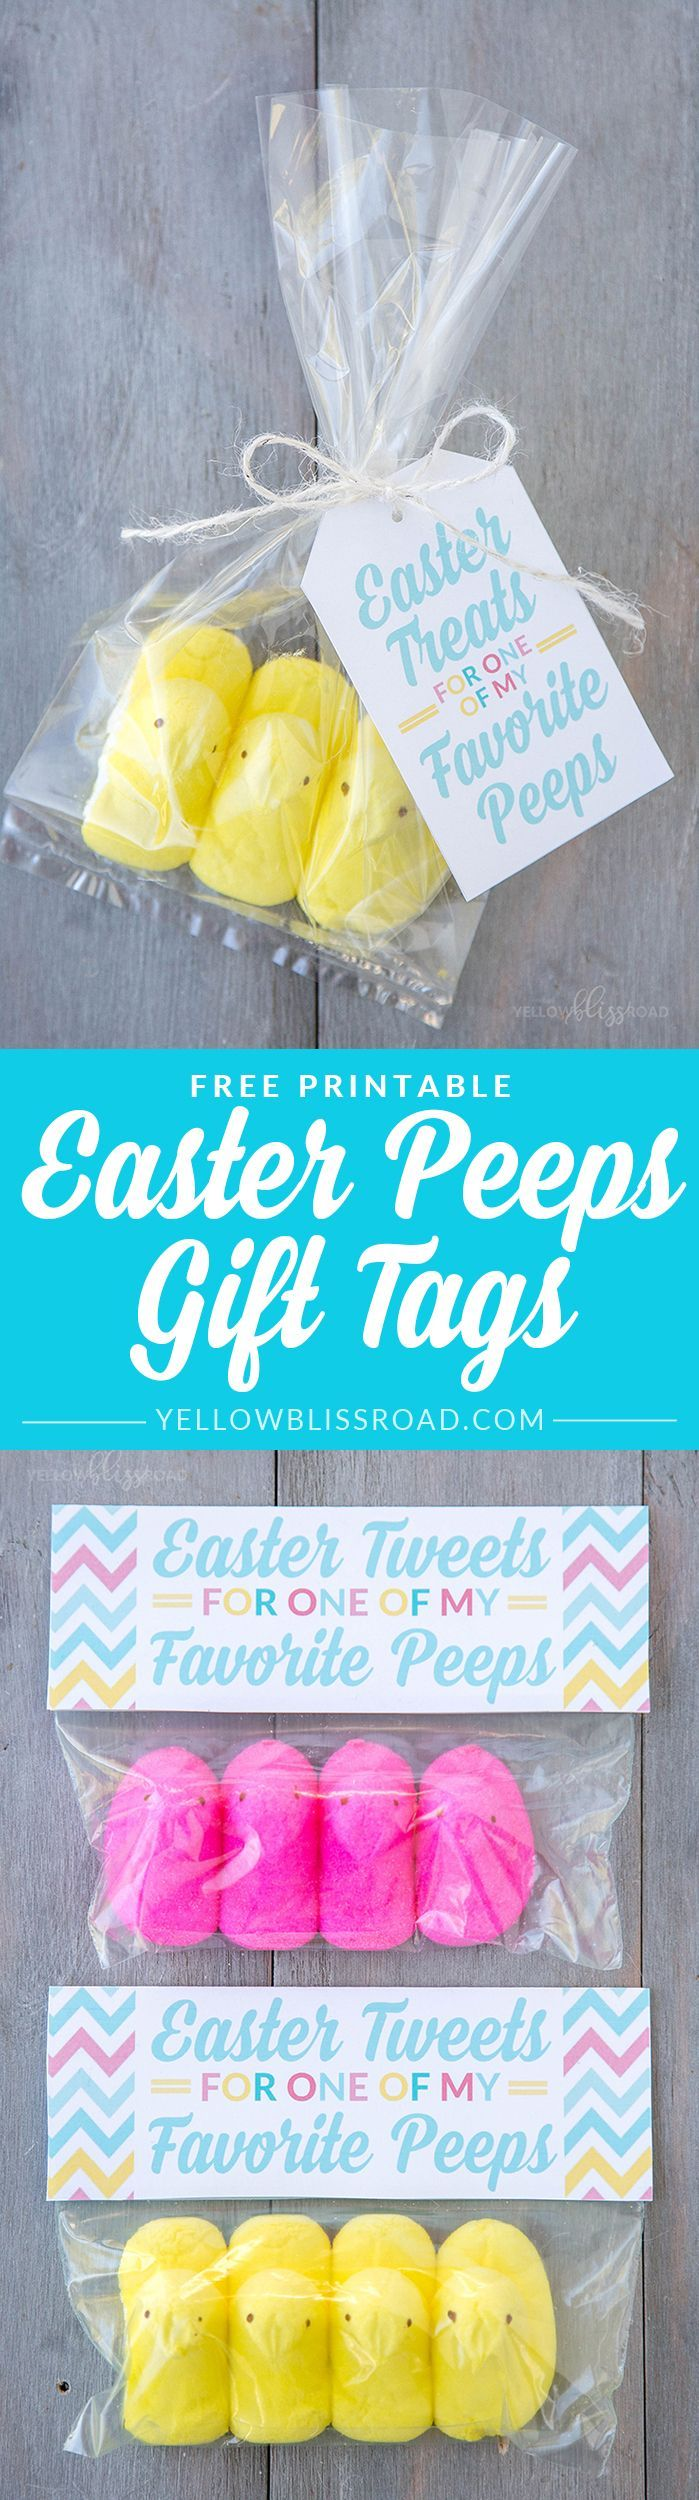 286 best images about easter on pinterest easter peeps free free printable peeps easter gift tags use these free printable gift tags to make sweet negle Gallery